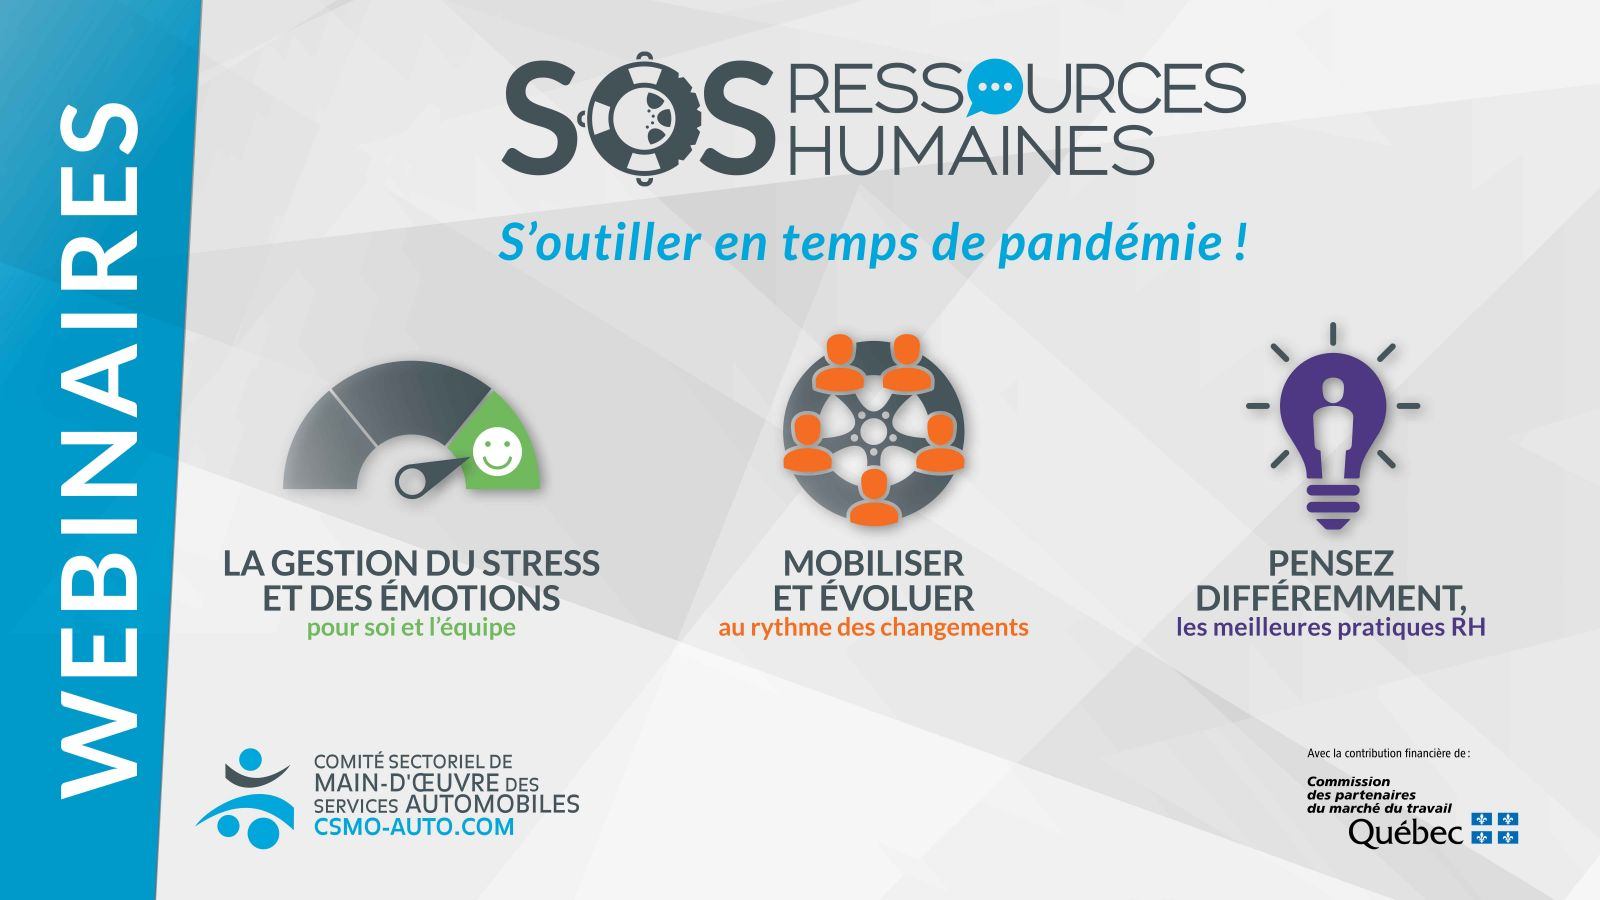 SOS Ressources humaines webinaires